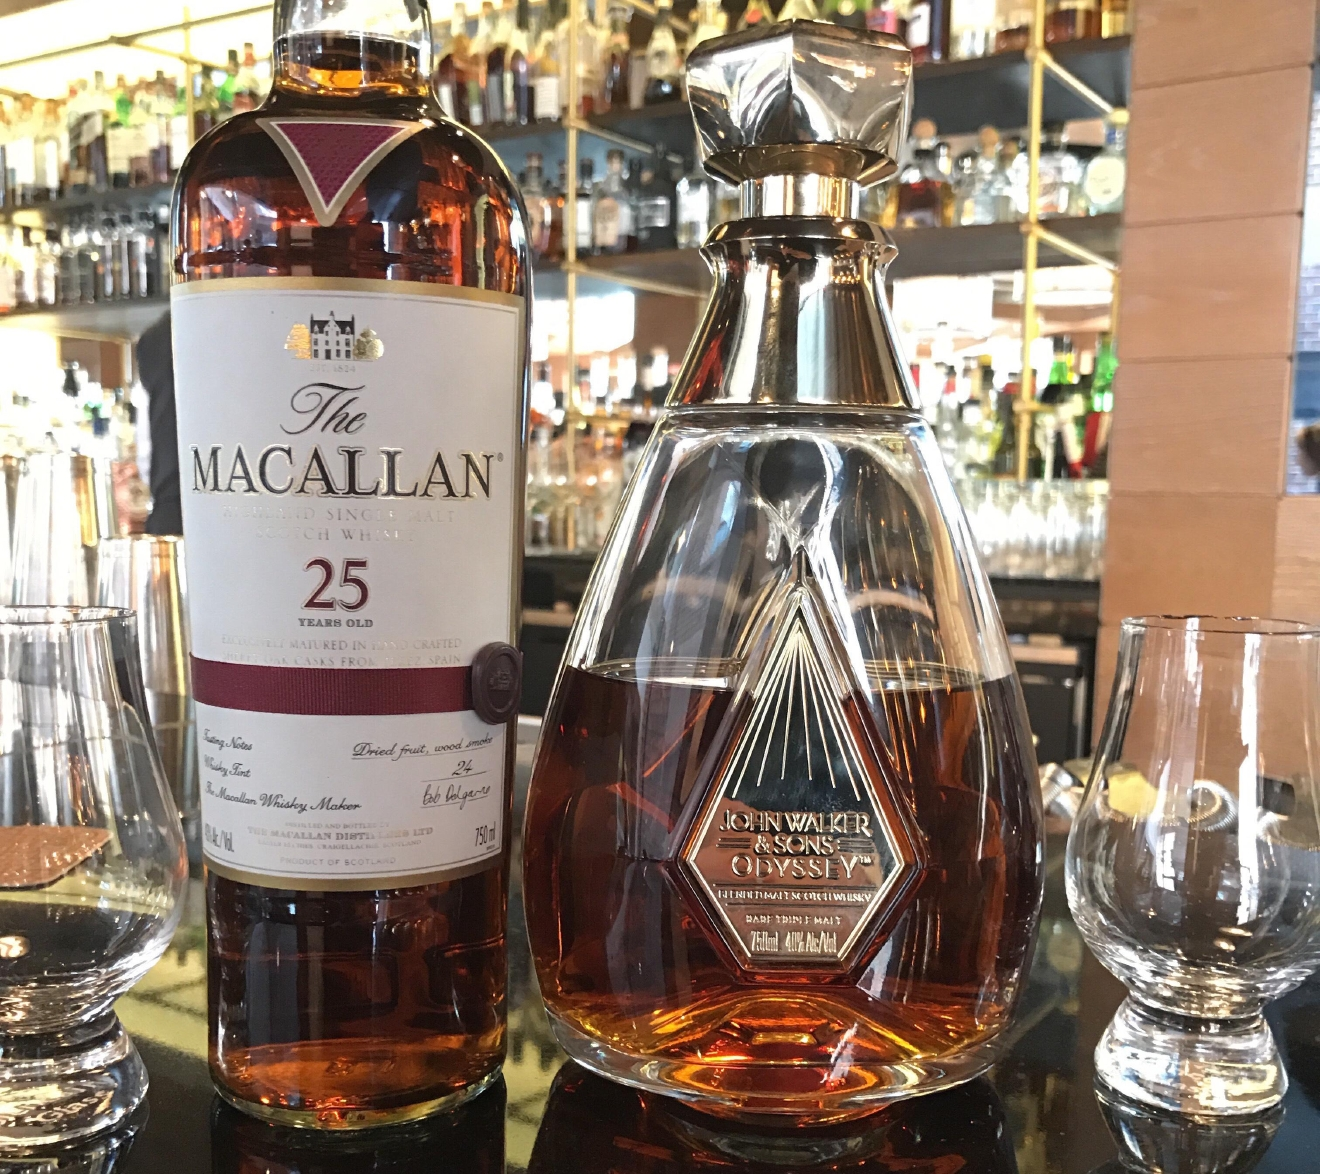 Macallan 25 Year Old and Johnnie Walker and Sons Odyssey at Bourbon Steak (Image: Courtesy Bourbon Steak)